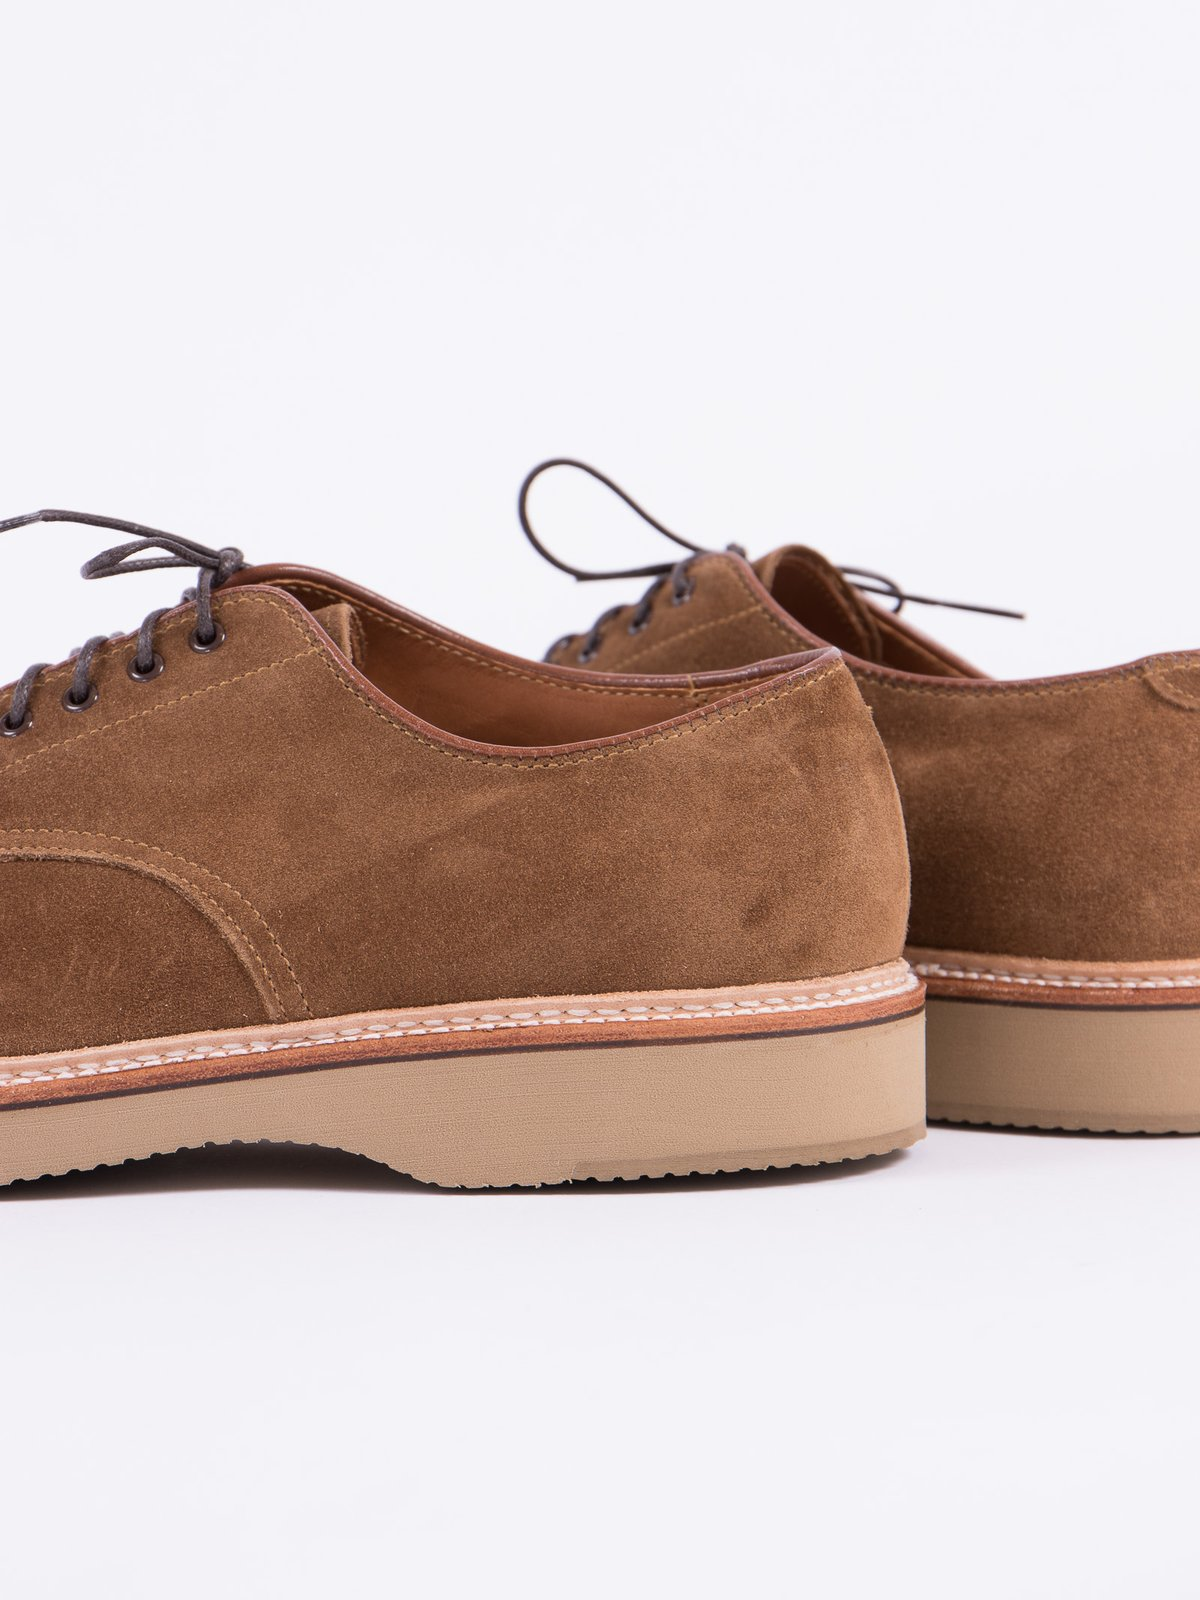 Snuff Suede Indy Work Shoe - Image 4